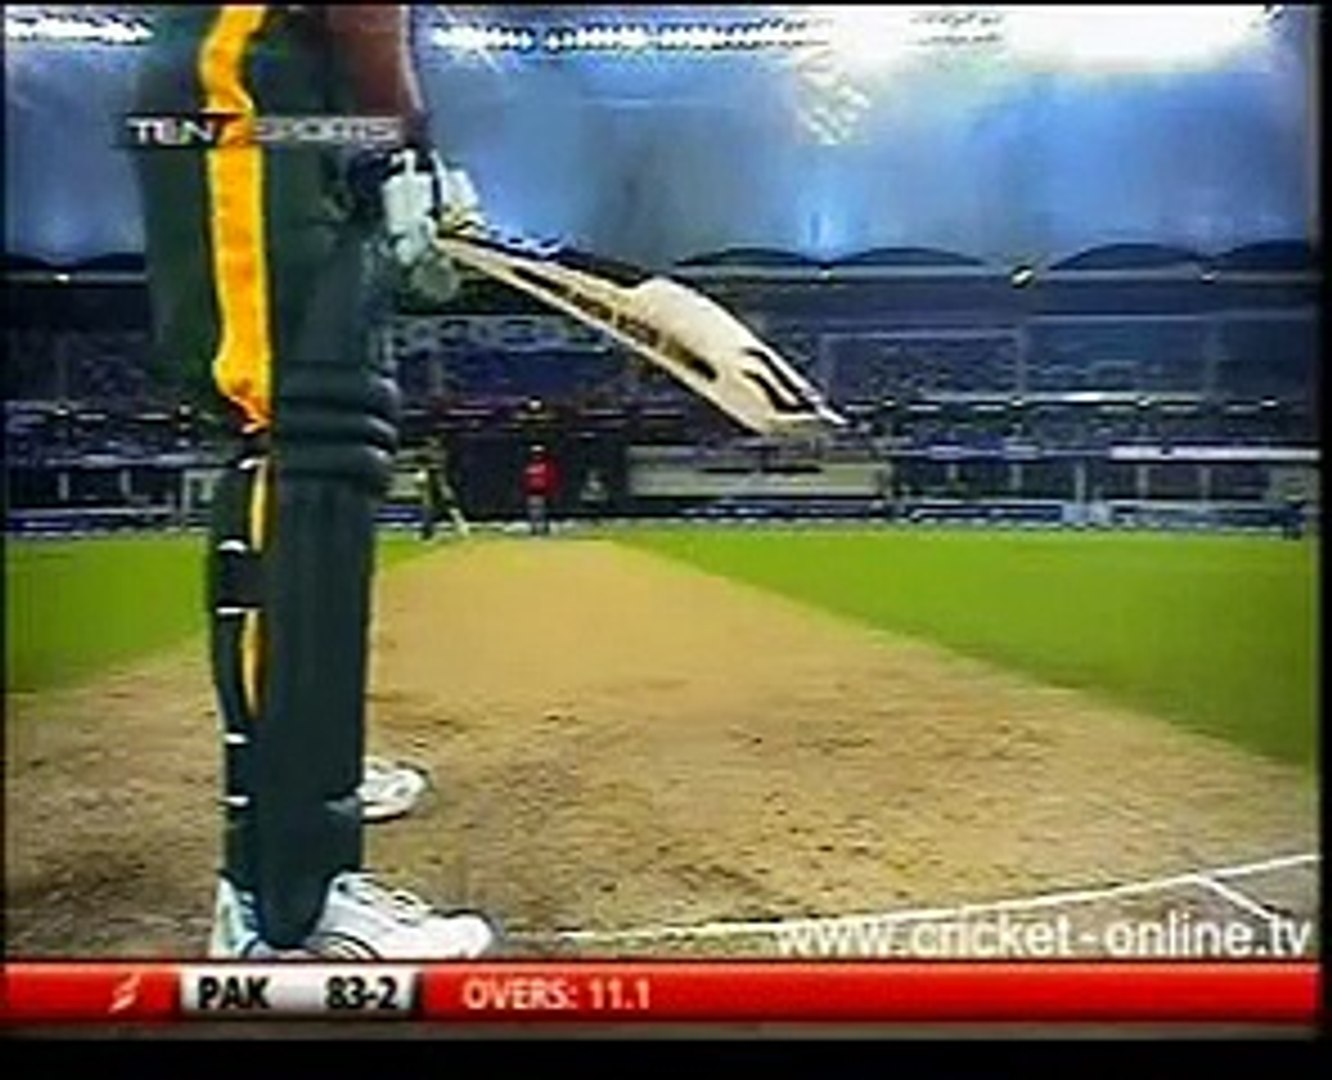 New Zealand NZ vs Pakistan 2nd T20 20 Highlights Dubai 2009 Cricket Highlights Video2